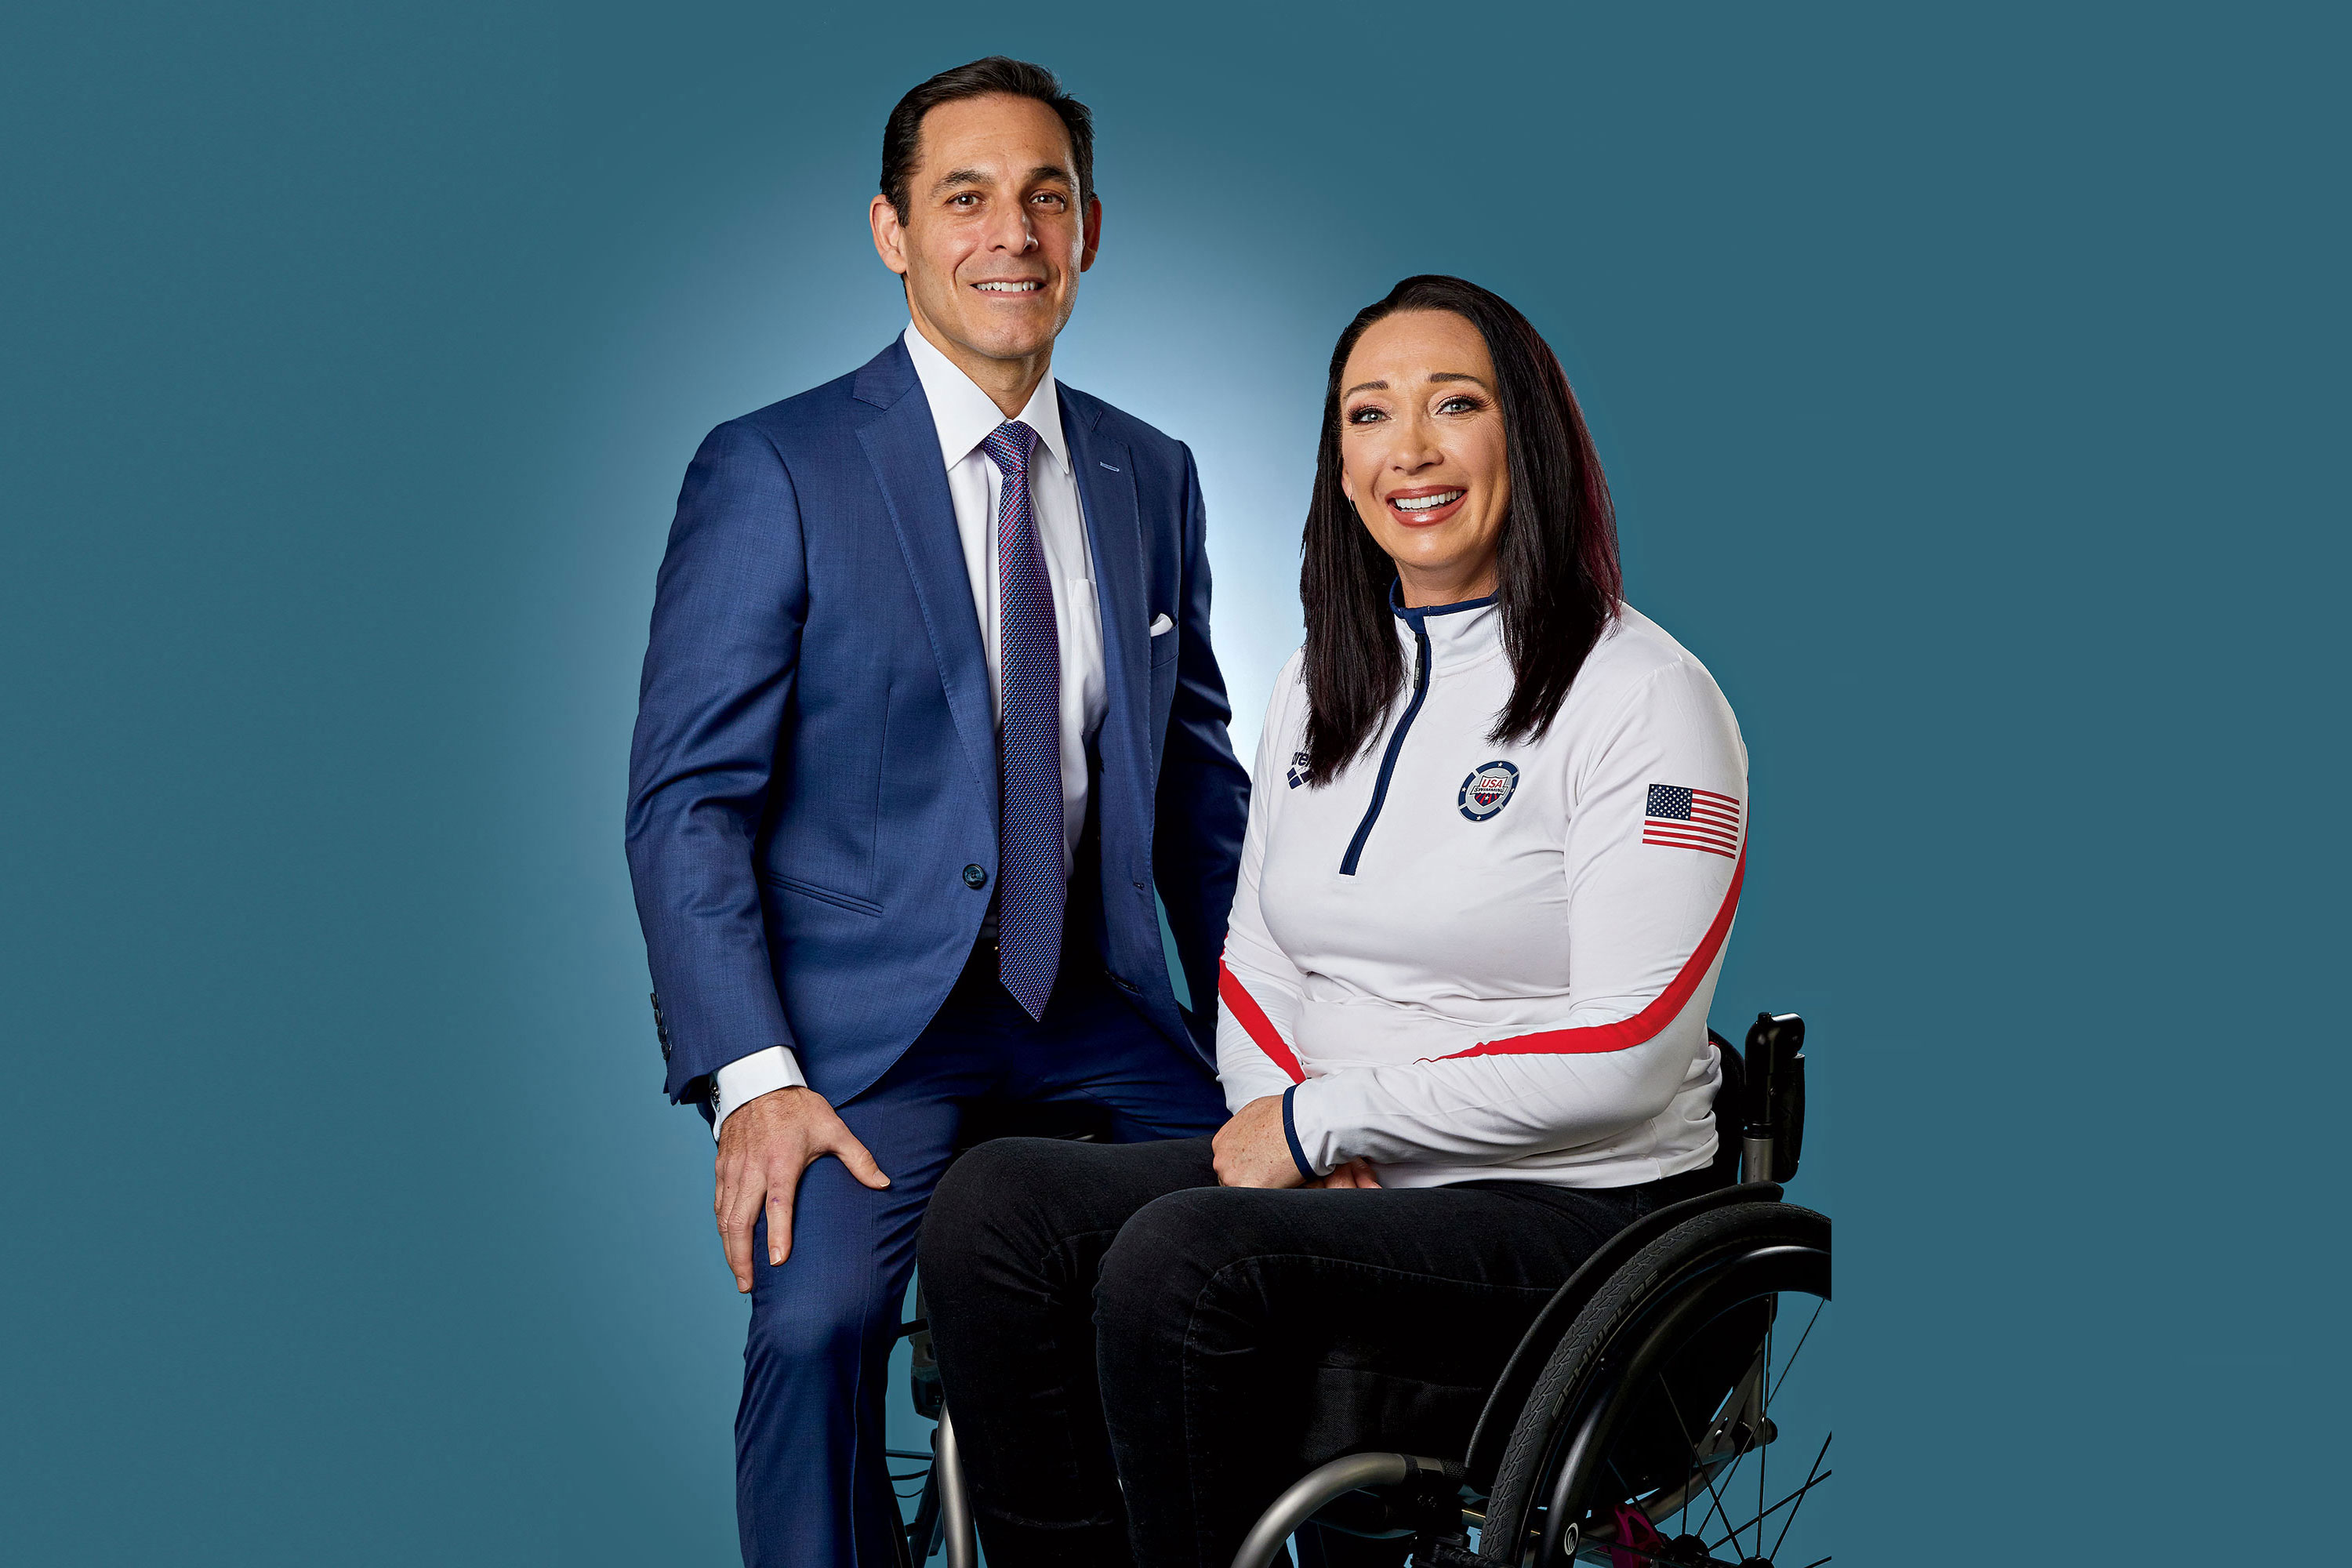 Olympian Recovery: In 2014, Olympic gold medal swimmer Amy Van Dyken-Rouen, below, severed her spinal cord in an ATV accident. With a spinal fracture between her T11 and T12 vertebrae that threatened to puncture her aorta, Van Dyken-Rouen was airlifted to Phoenix, where Dr. Luis Tumialán led the team that saved her life. She was given only a 20 percent chance of surviving the accident.; Photography by Steve Craft